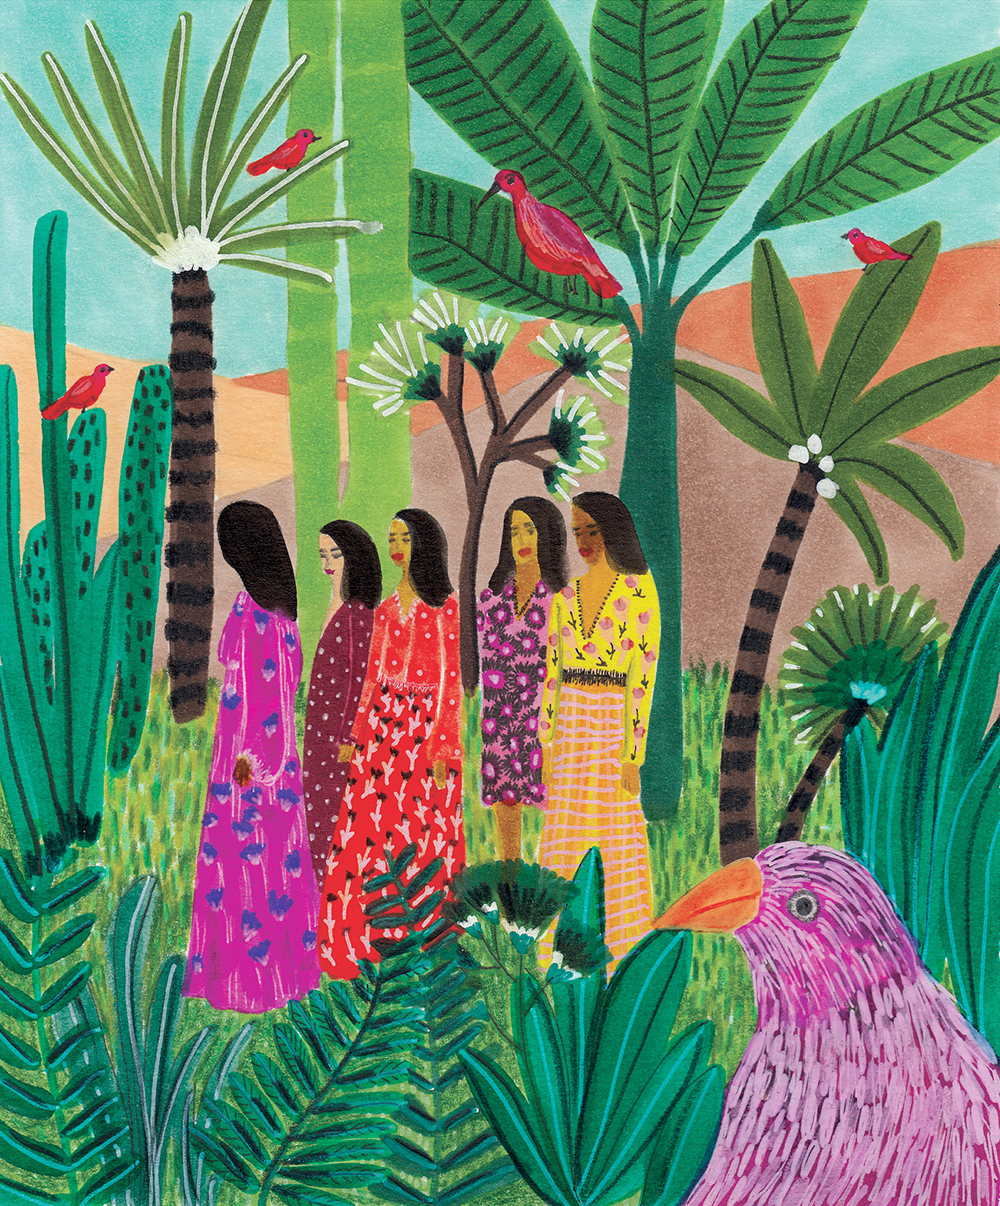 Exotic Artwork That Takes You On a Visual Journey